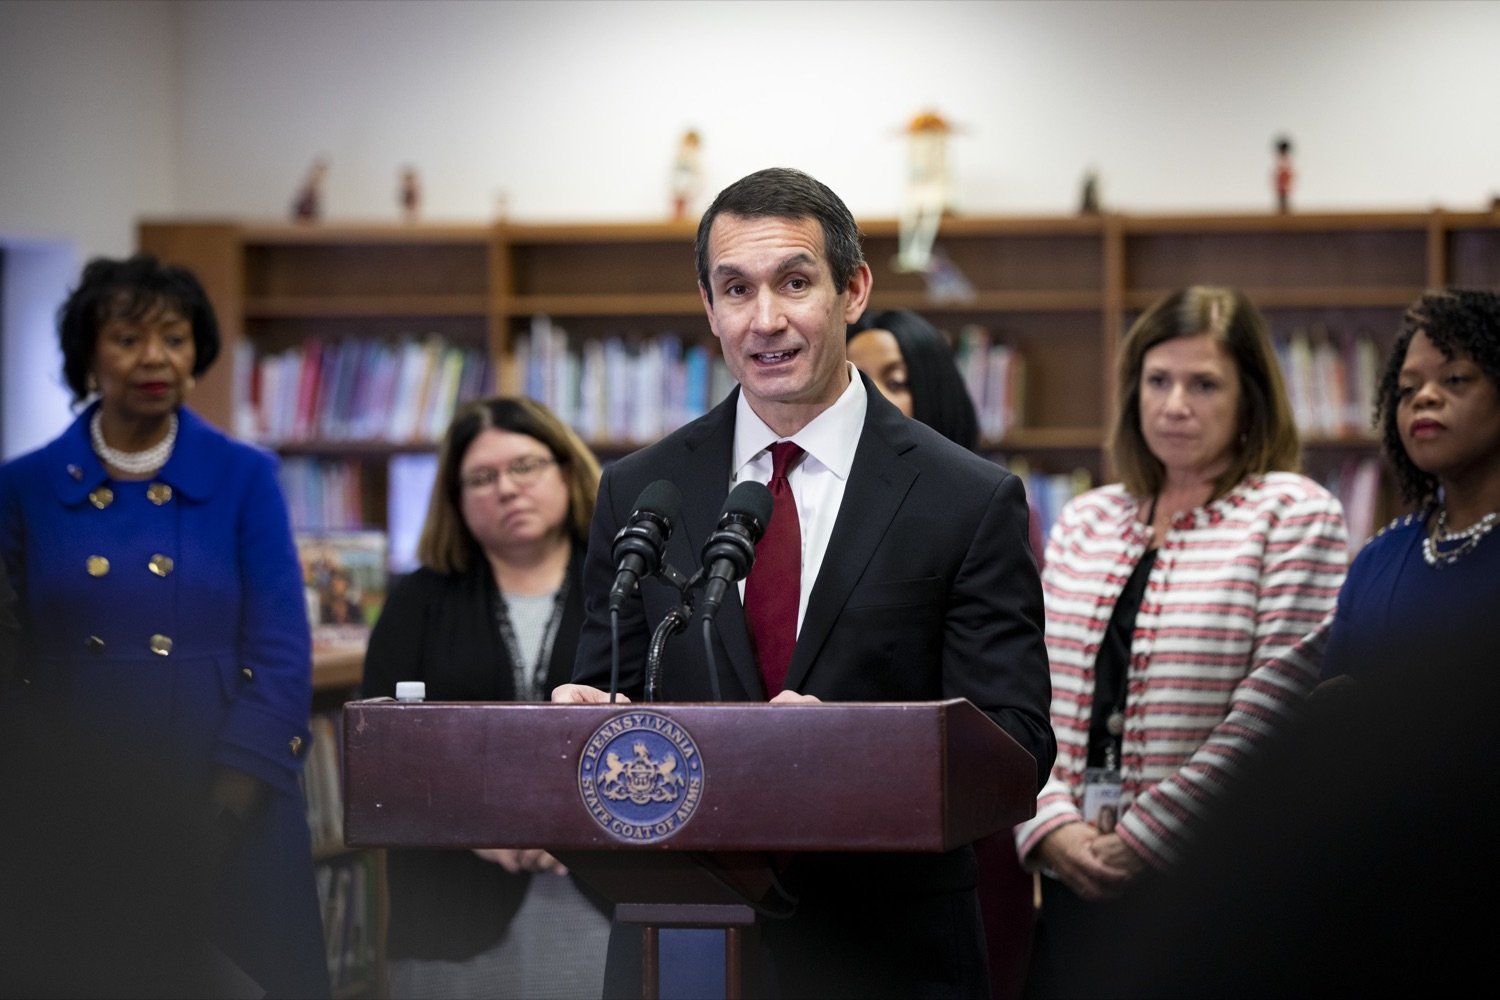 "<a href=""https://filesource.wostreaming.net/commonwealthofpa/photo/17611_AUD_GEN_HBG_AUDIT_UPDATE_CZ_09.JPG"" target=""_blank"">⇣ Download Photo<br></a>Auditor General Eugene DePasquale announces updates to the real-time audit of Harrisburg School District, applauding improvements in transparency, at Foose Elementary School in Harrisburg on November 25, 2019."